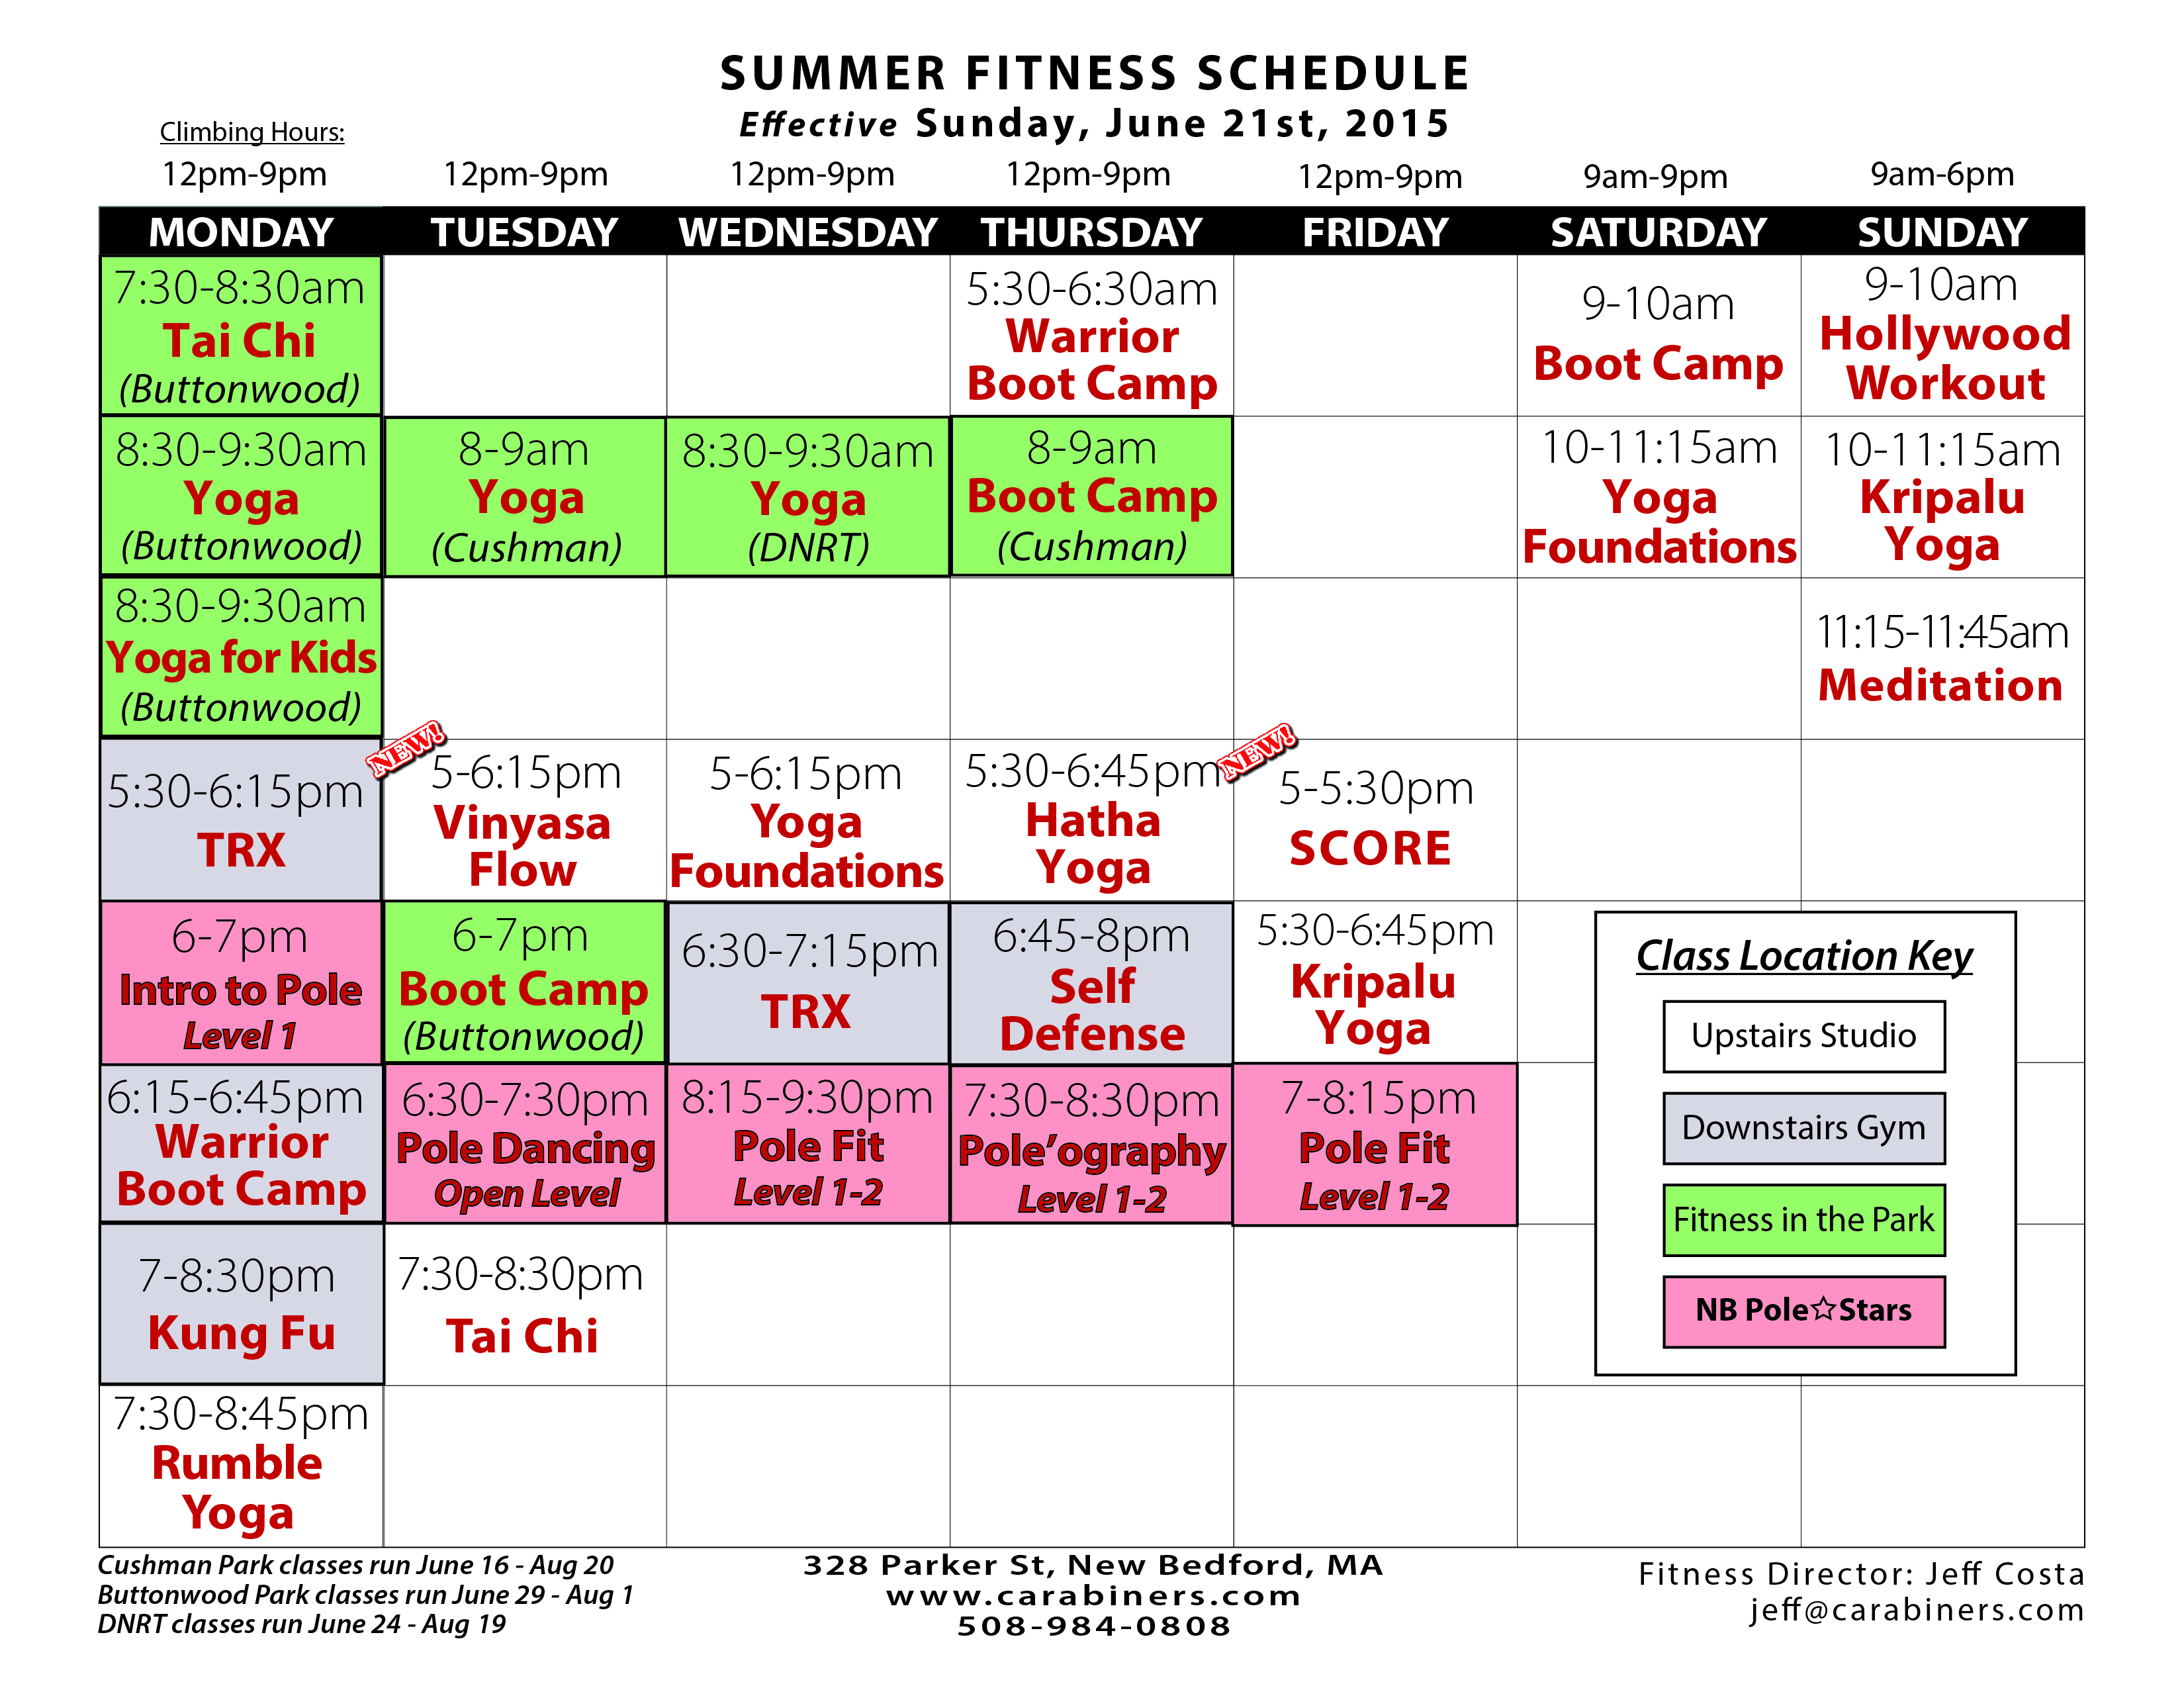 Check Out The Schedule Online